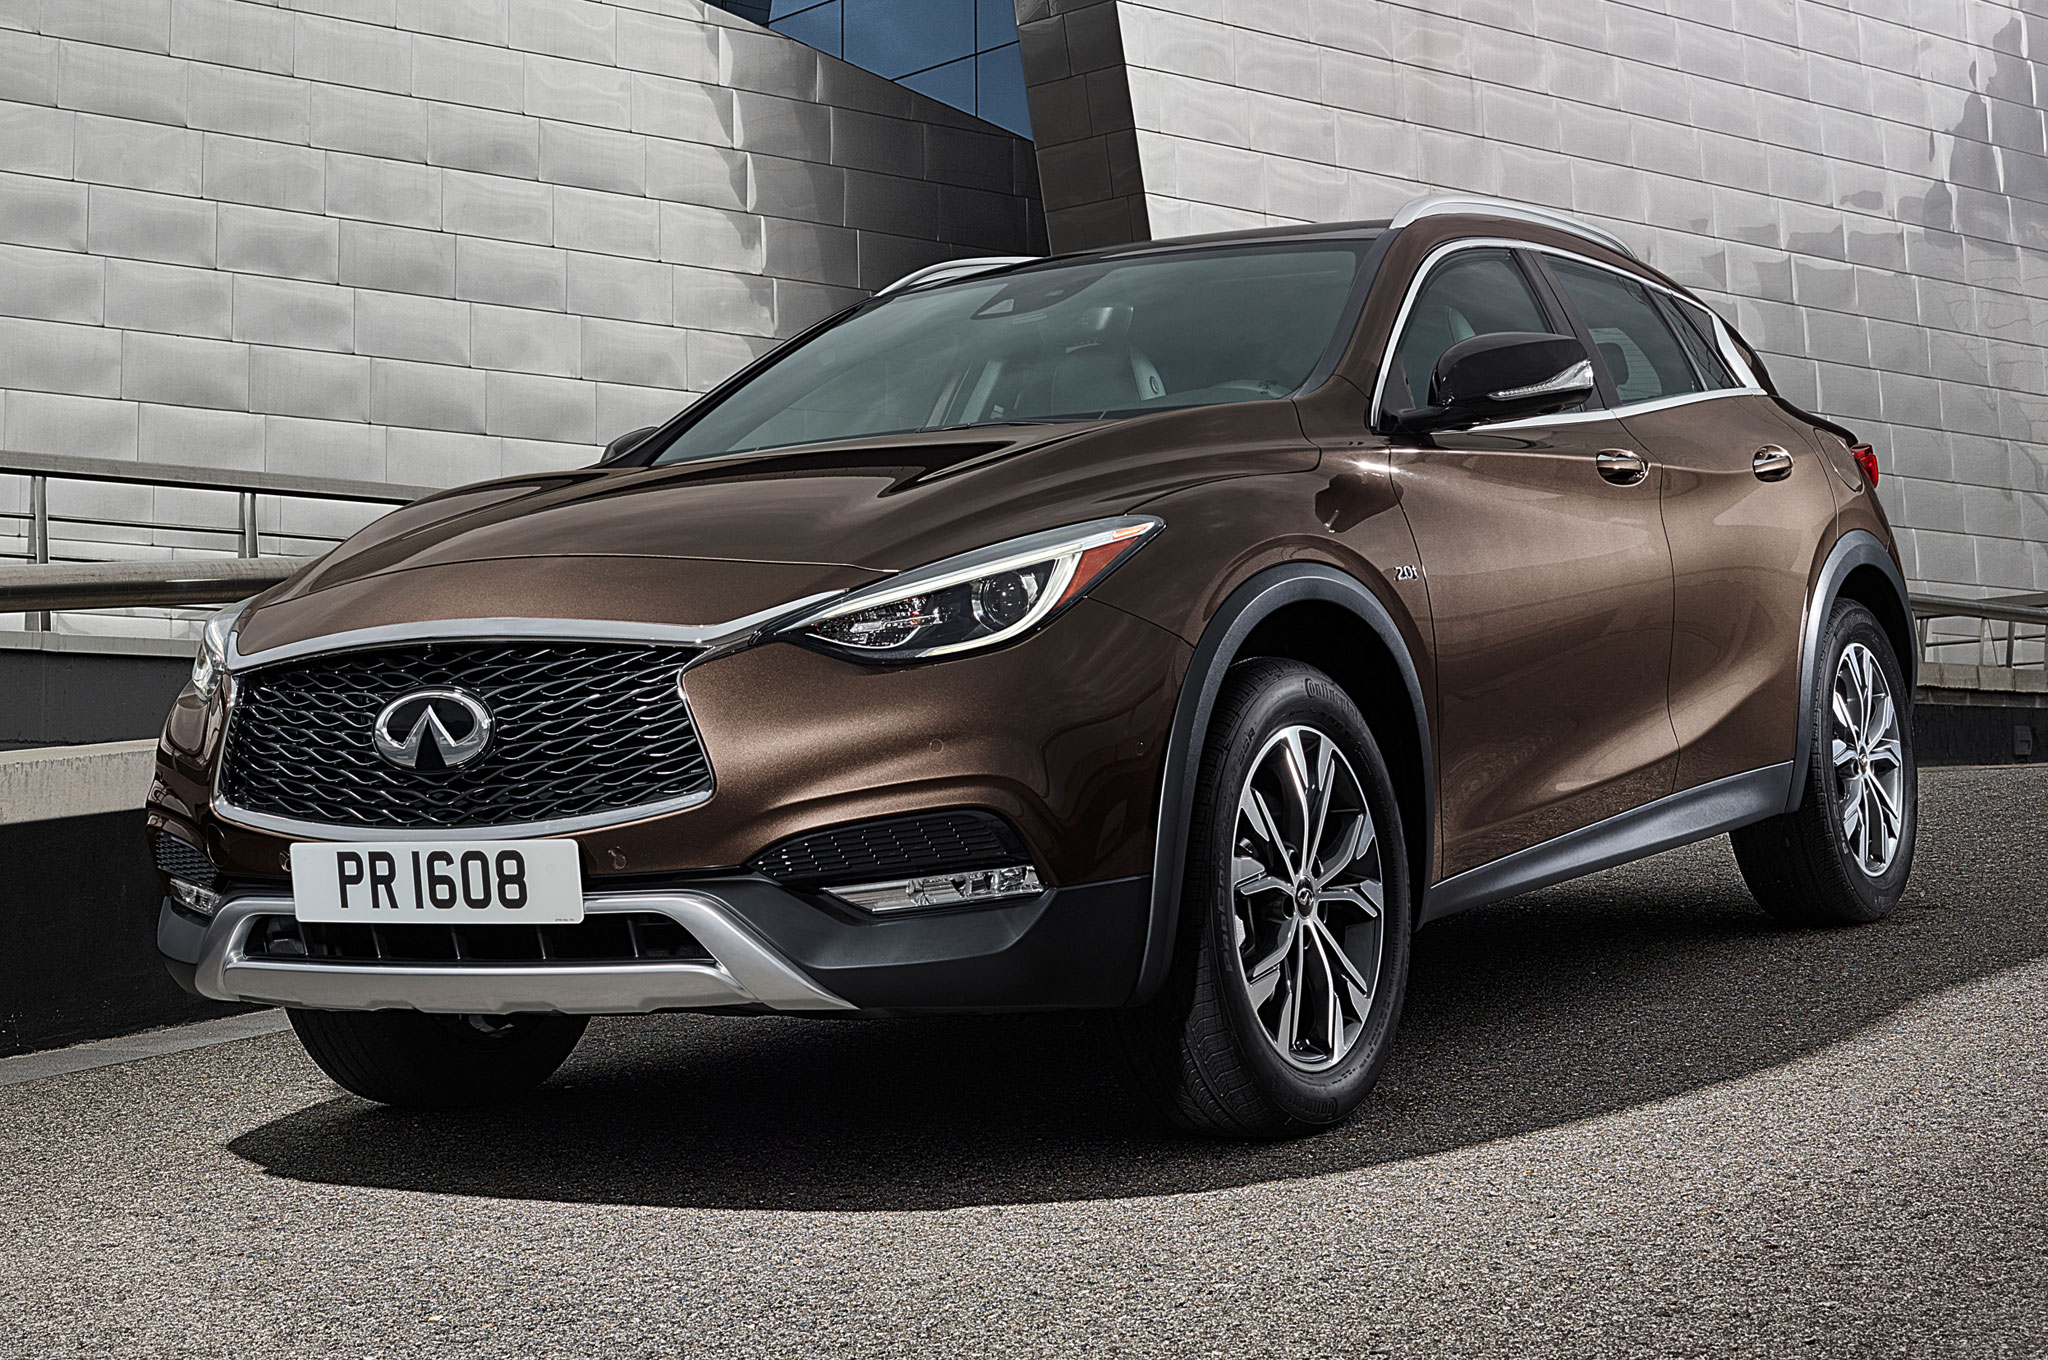 2017-Infiniti-QX30-front-side-view-on-ramp